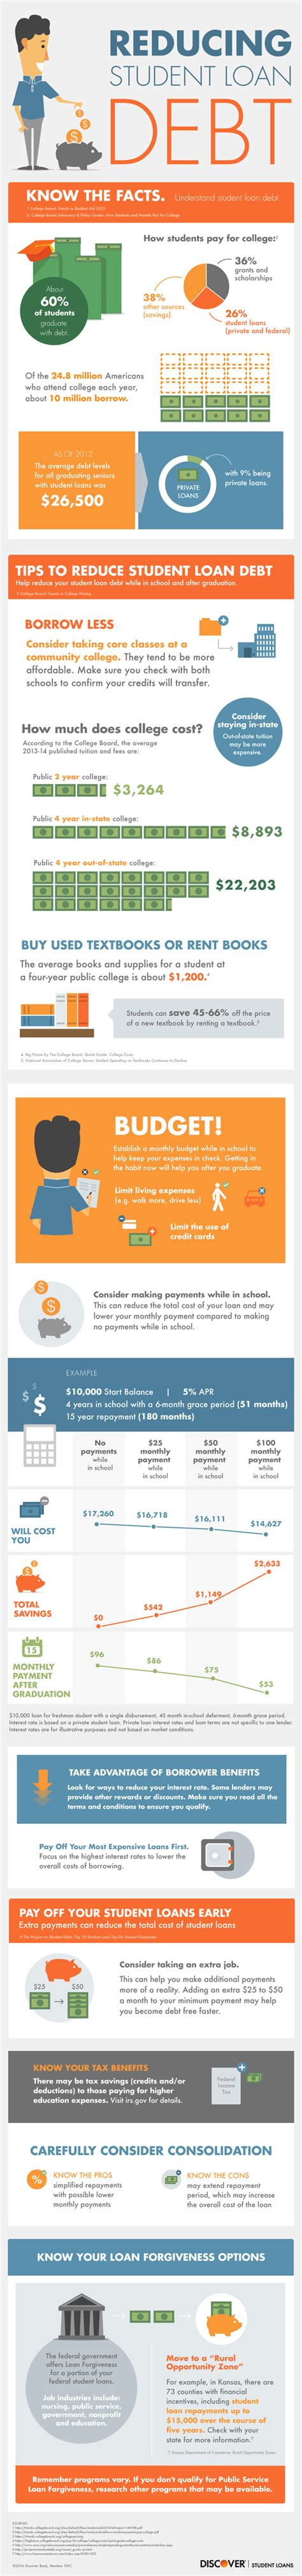 Reducing Student Loan Debt  Reduce Debt  Discover Student Loans